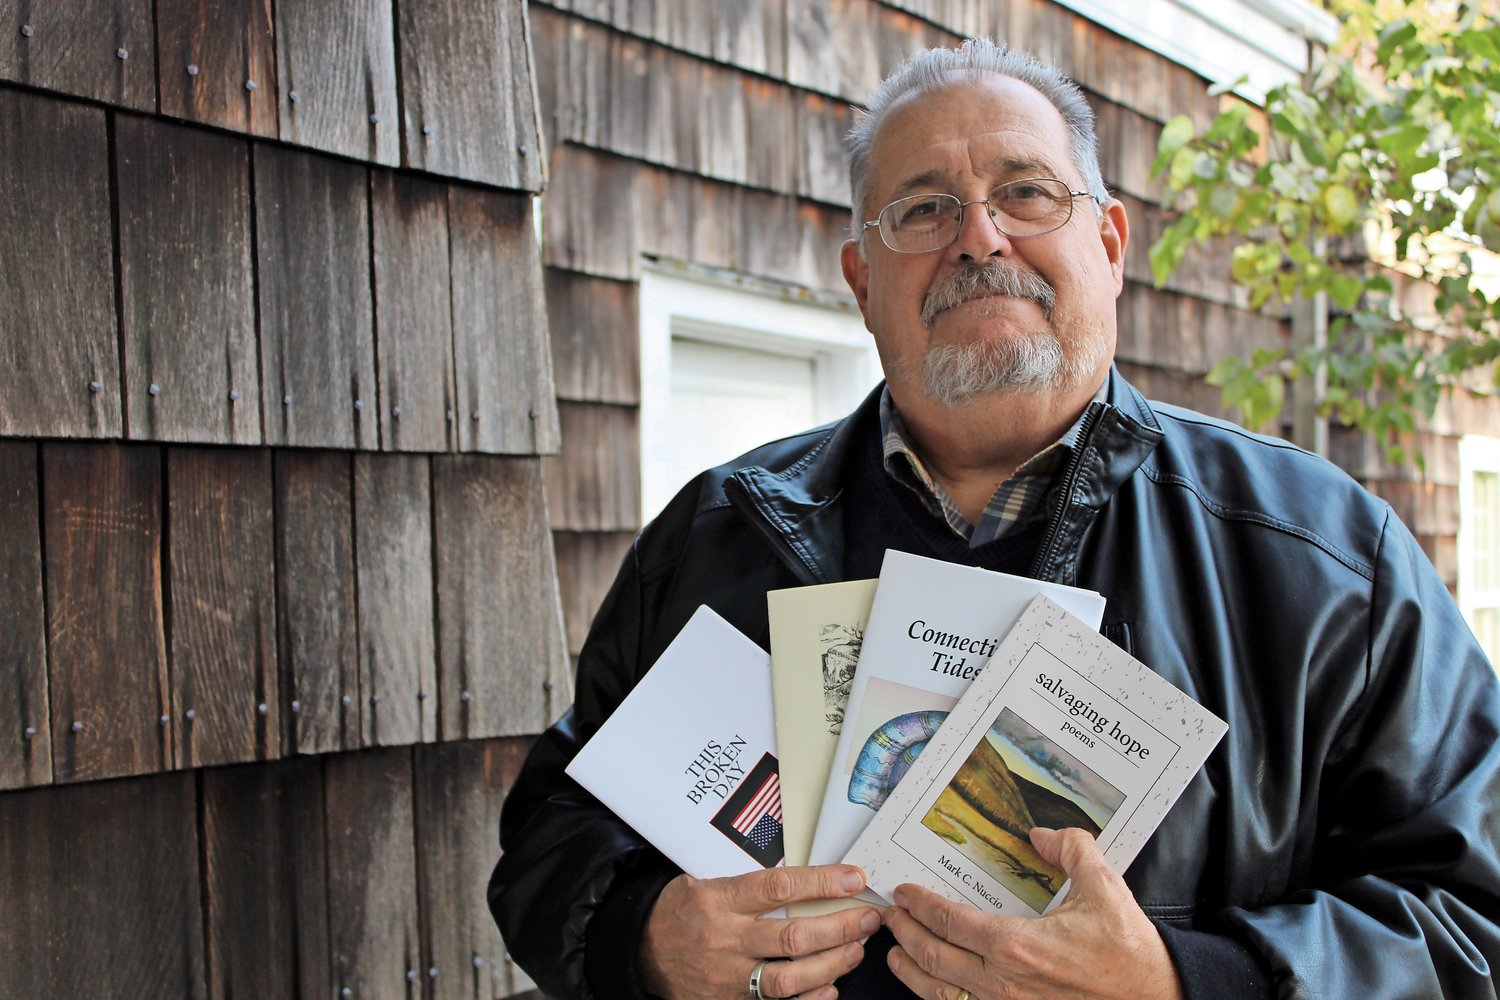 Bellmore artist and poet Mark Nuccio with a collection of his published chapbooks — small books of poetry — at the Walt Whitman Birthplace in Huntington, where he is treasurer of the board of trustees.